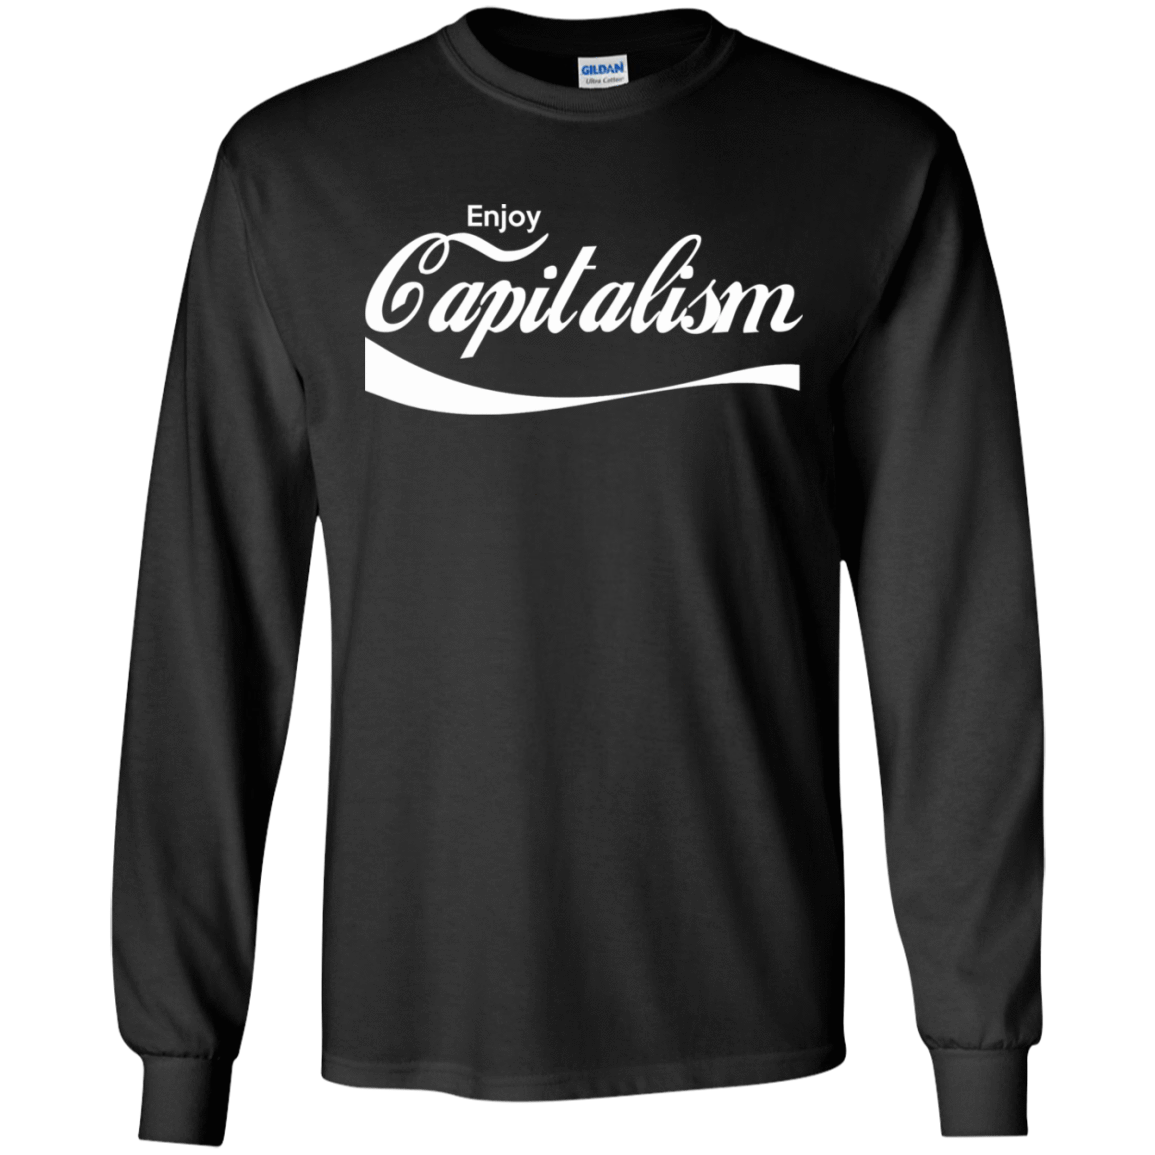 Enjoy Capitalism 30-186-74209511-333 - Tee Ript